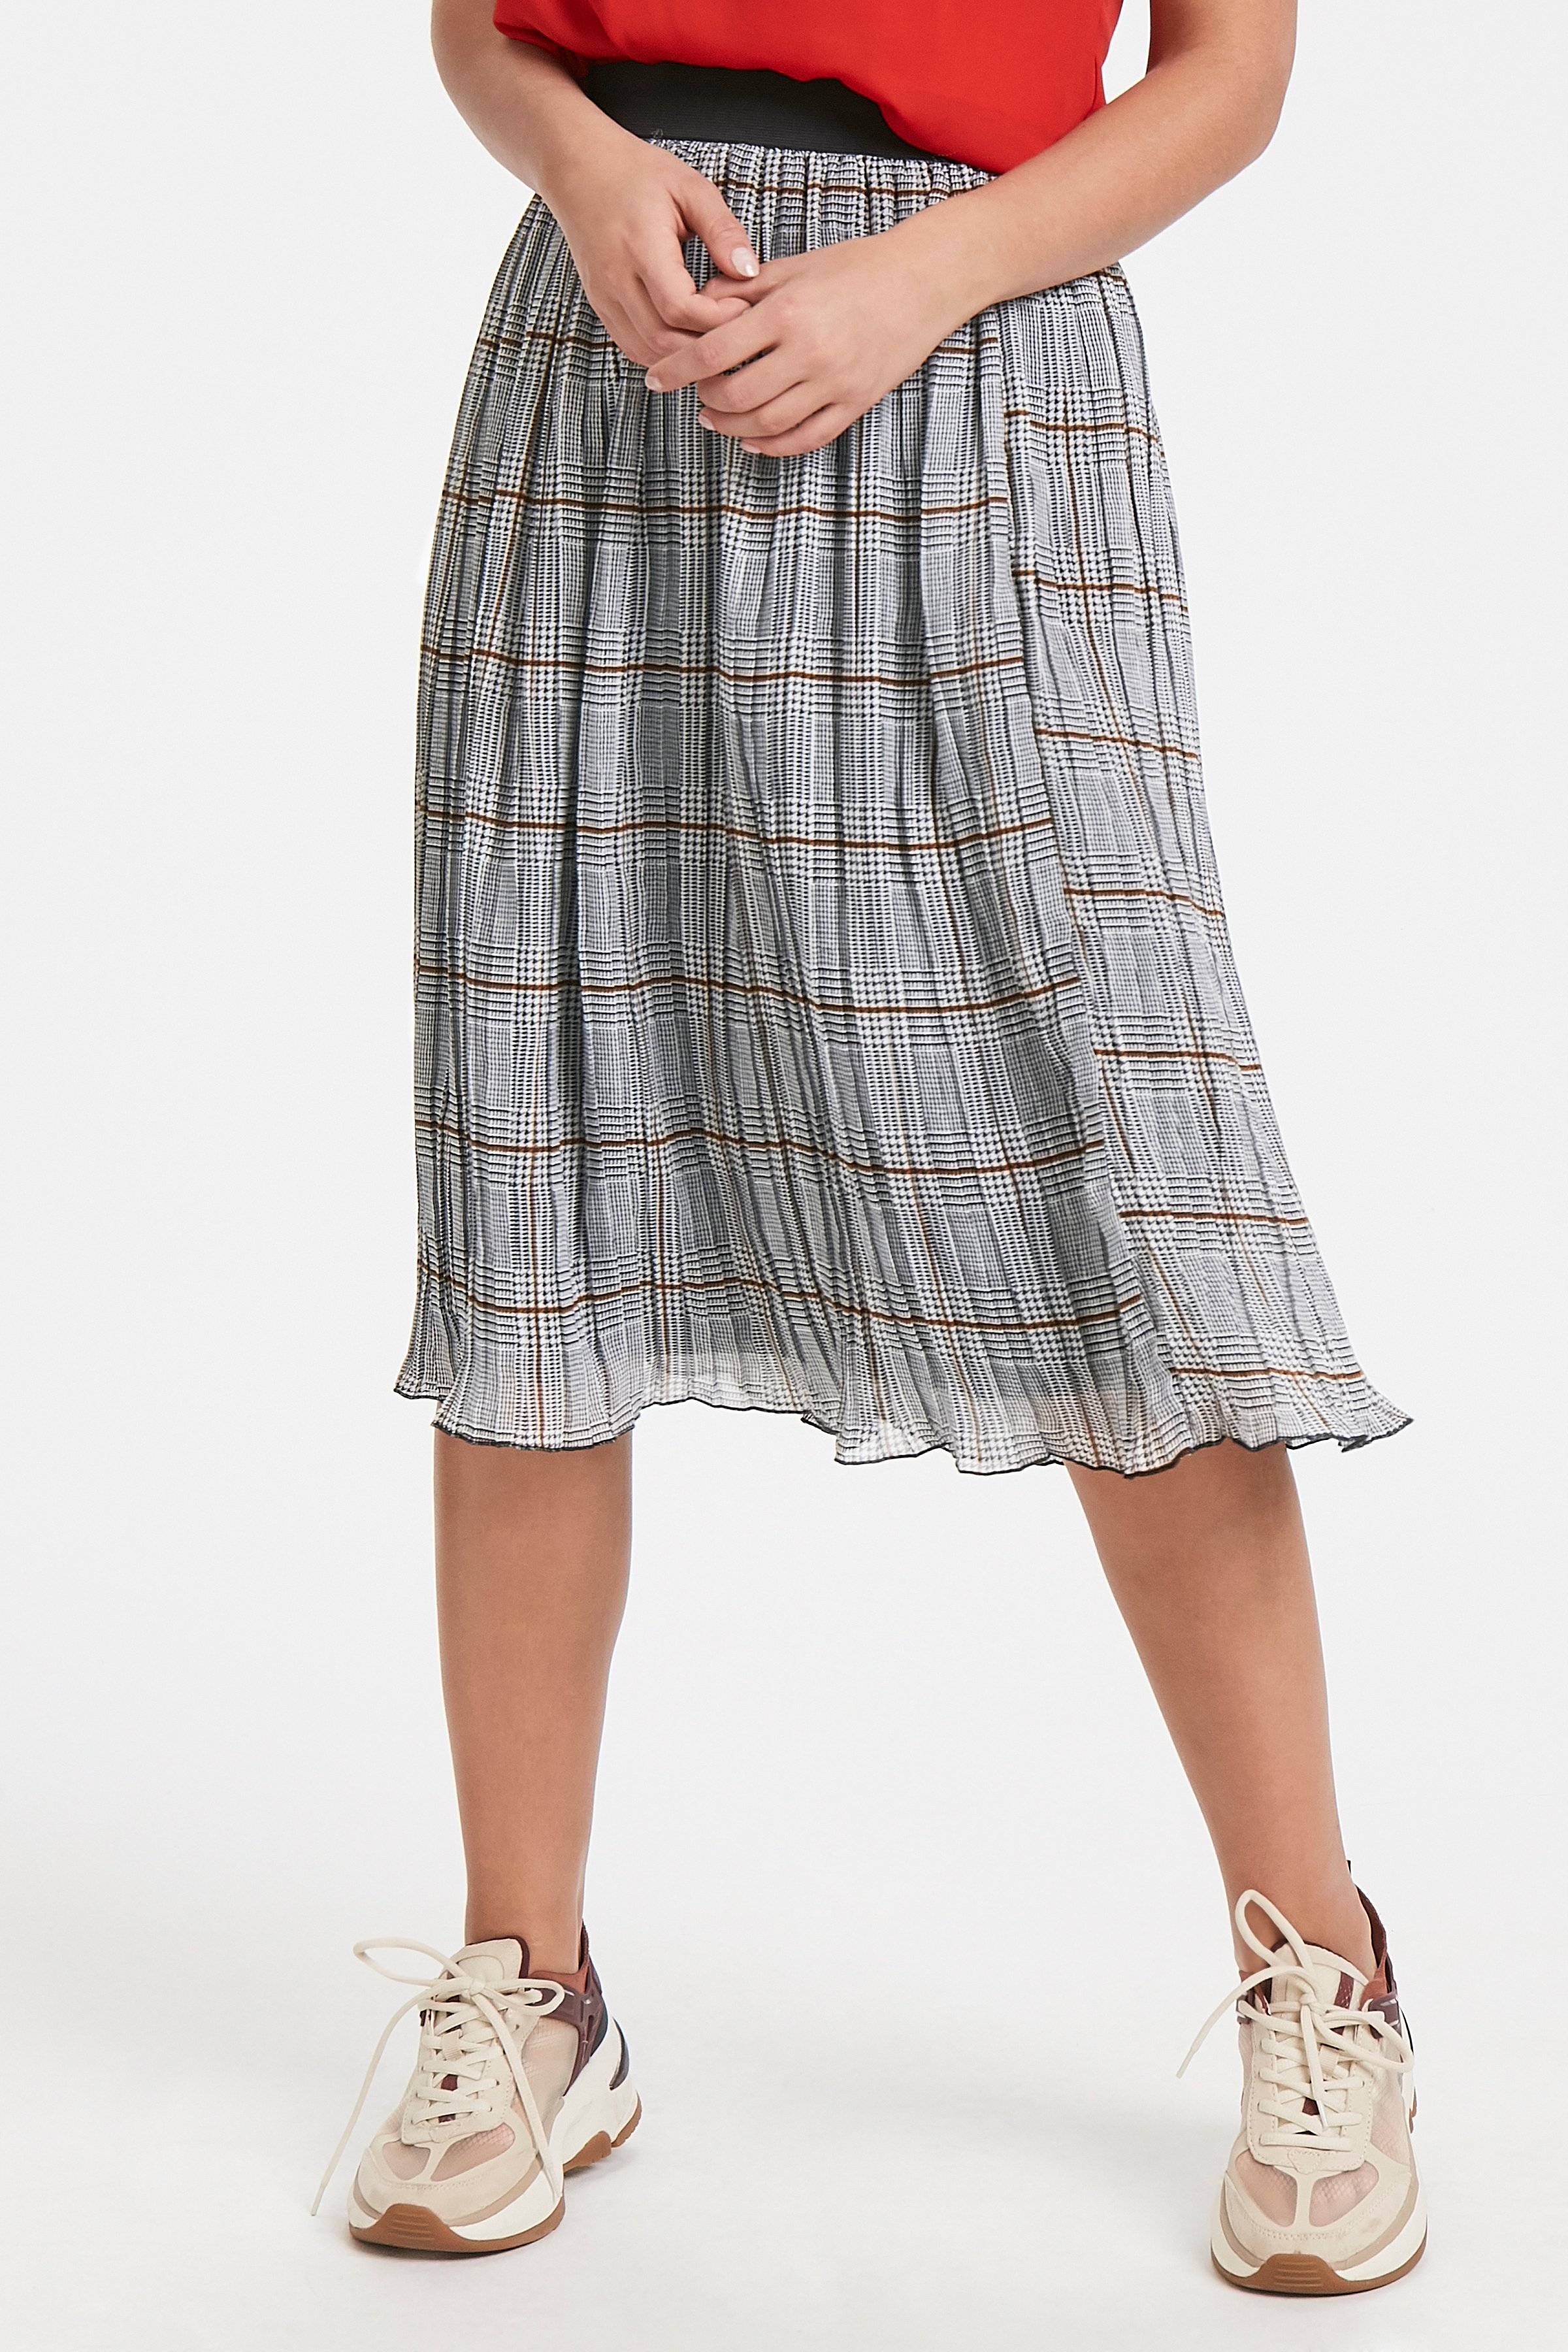 Black combi 1 Skirt from b.young – Buy Black combi 1 Skirt from size 36-46 here